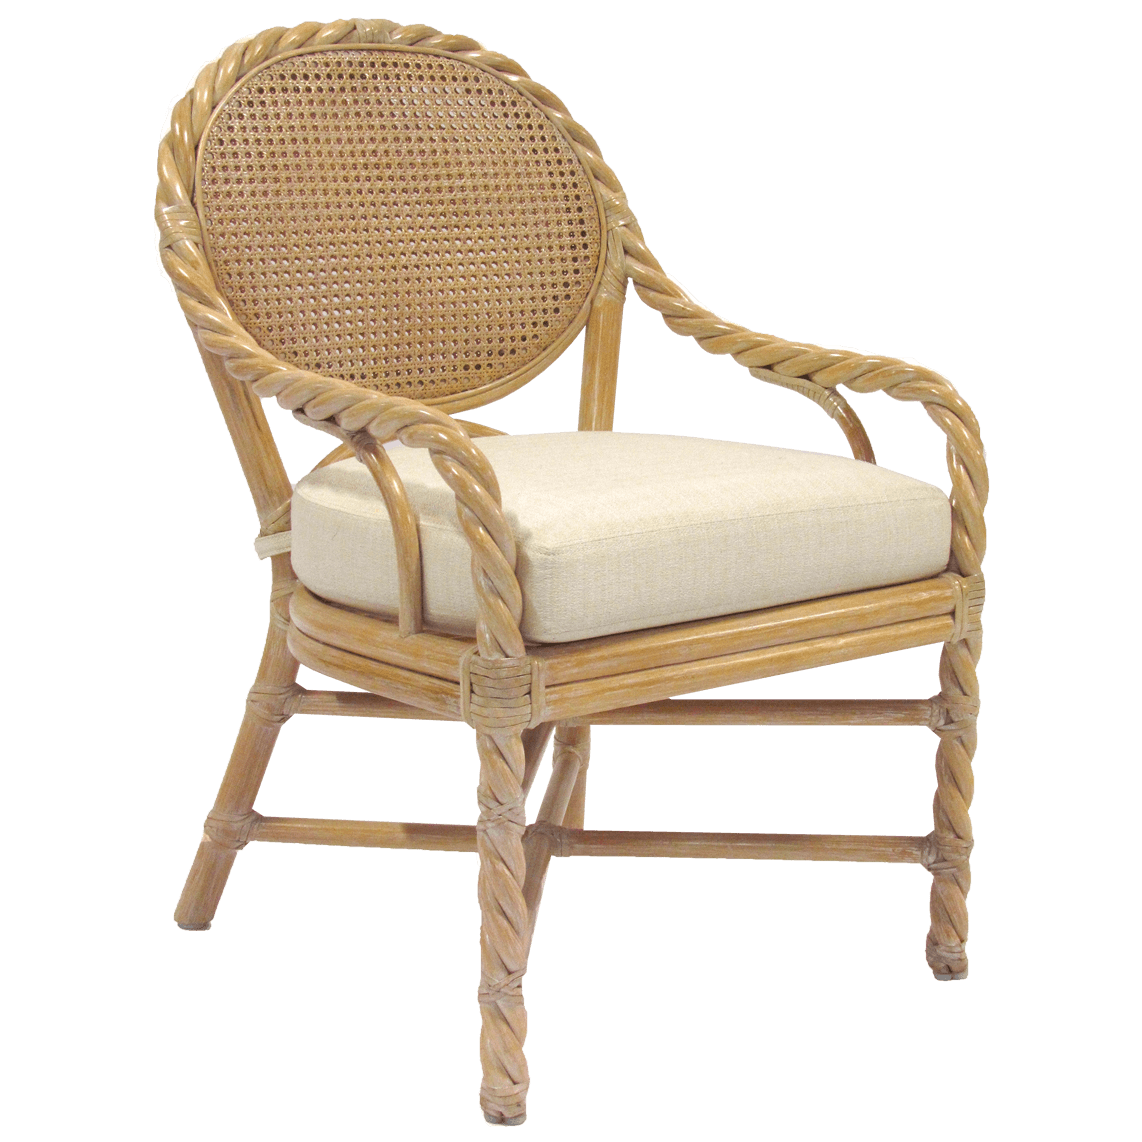 rattan arm chair round table 8 chairs diameter twisted kdrshowrooms